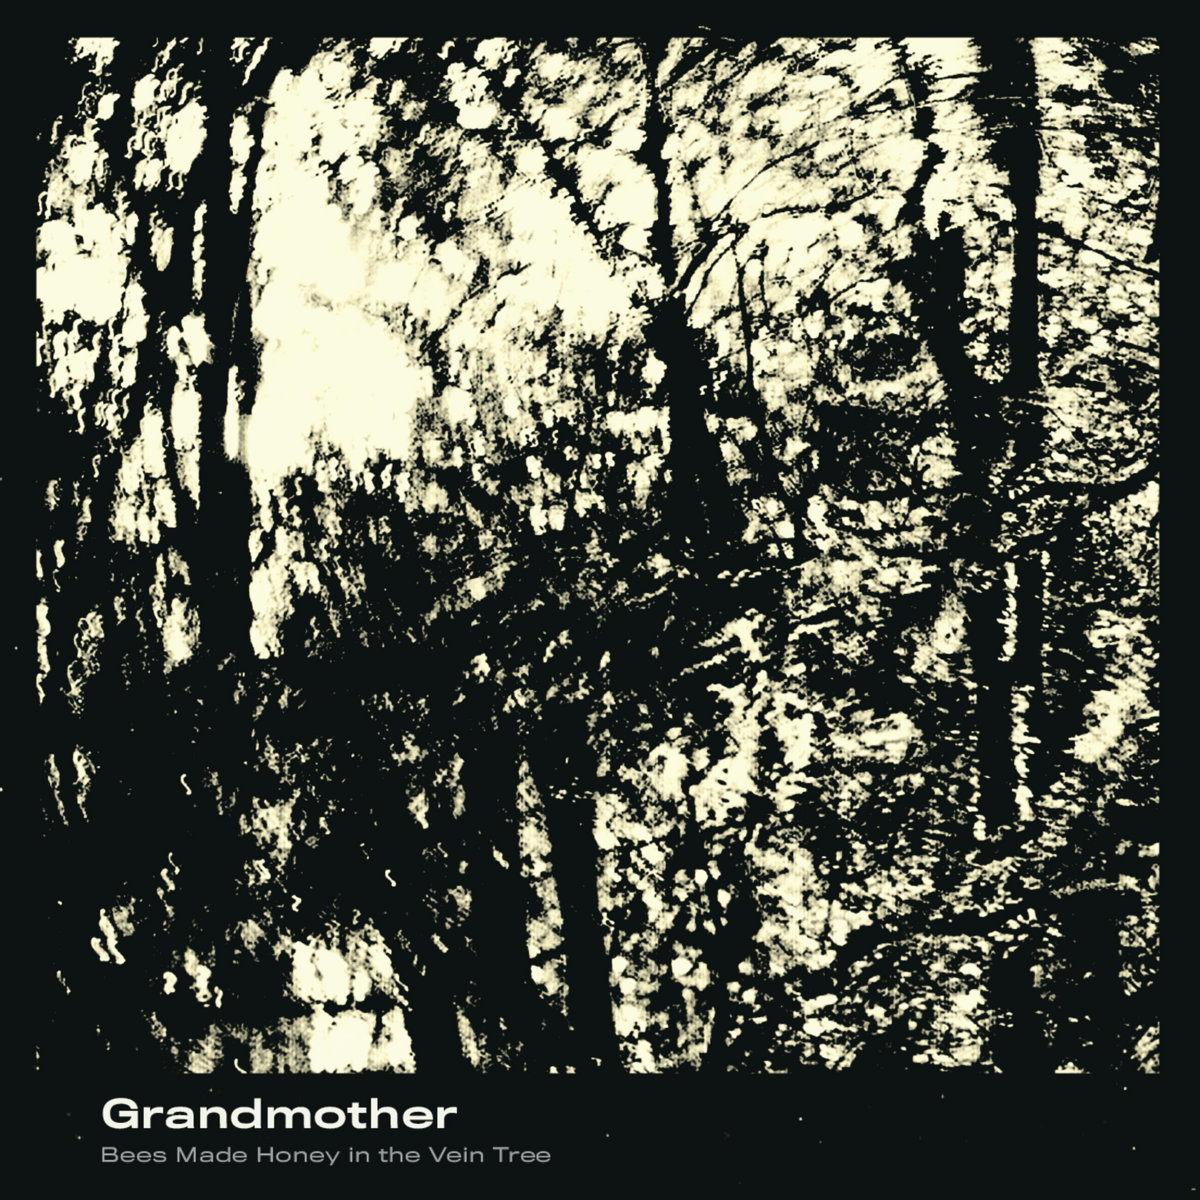 bees made honey in the vein tree - grandmother (2019)